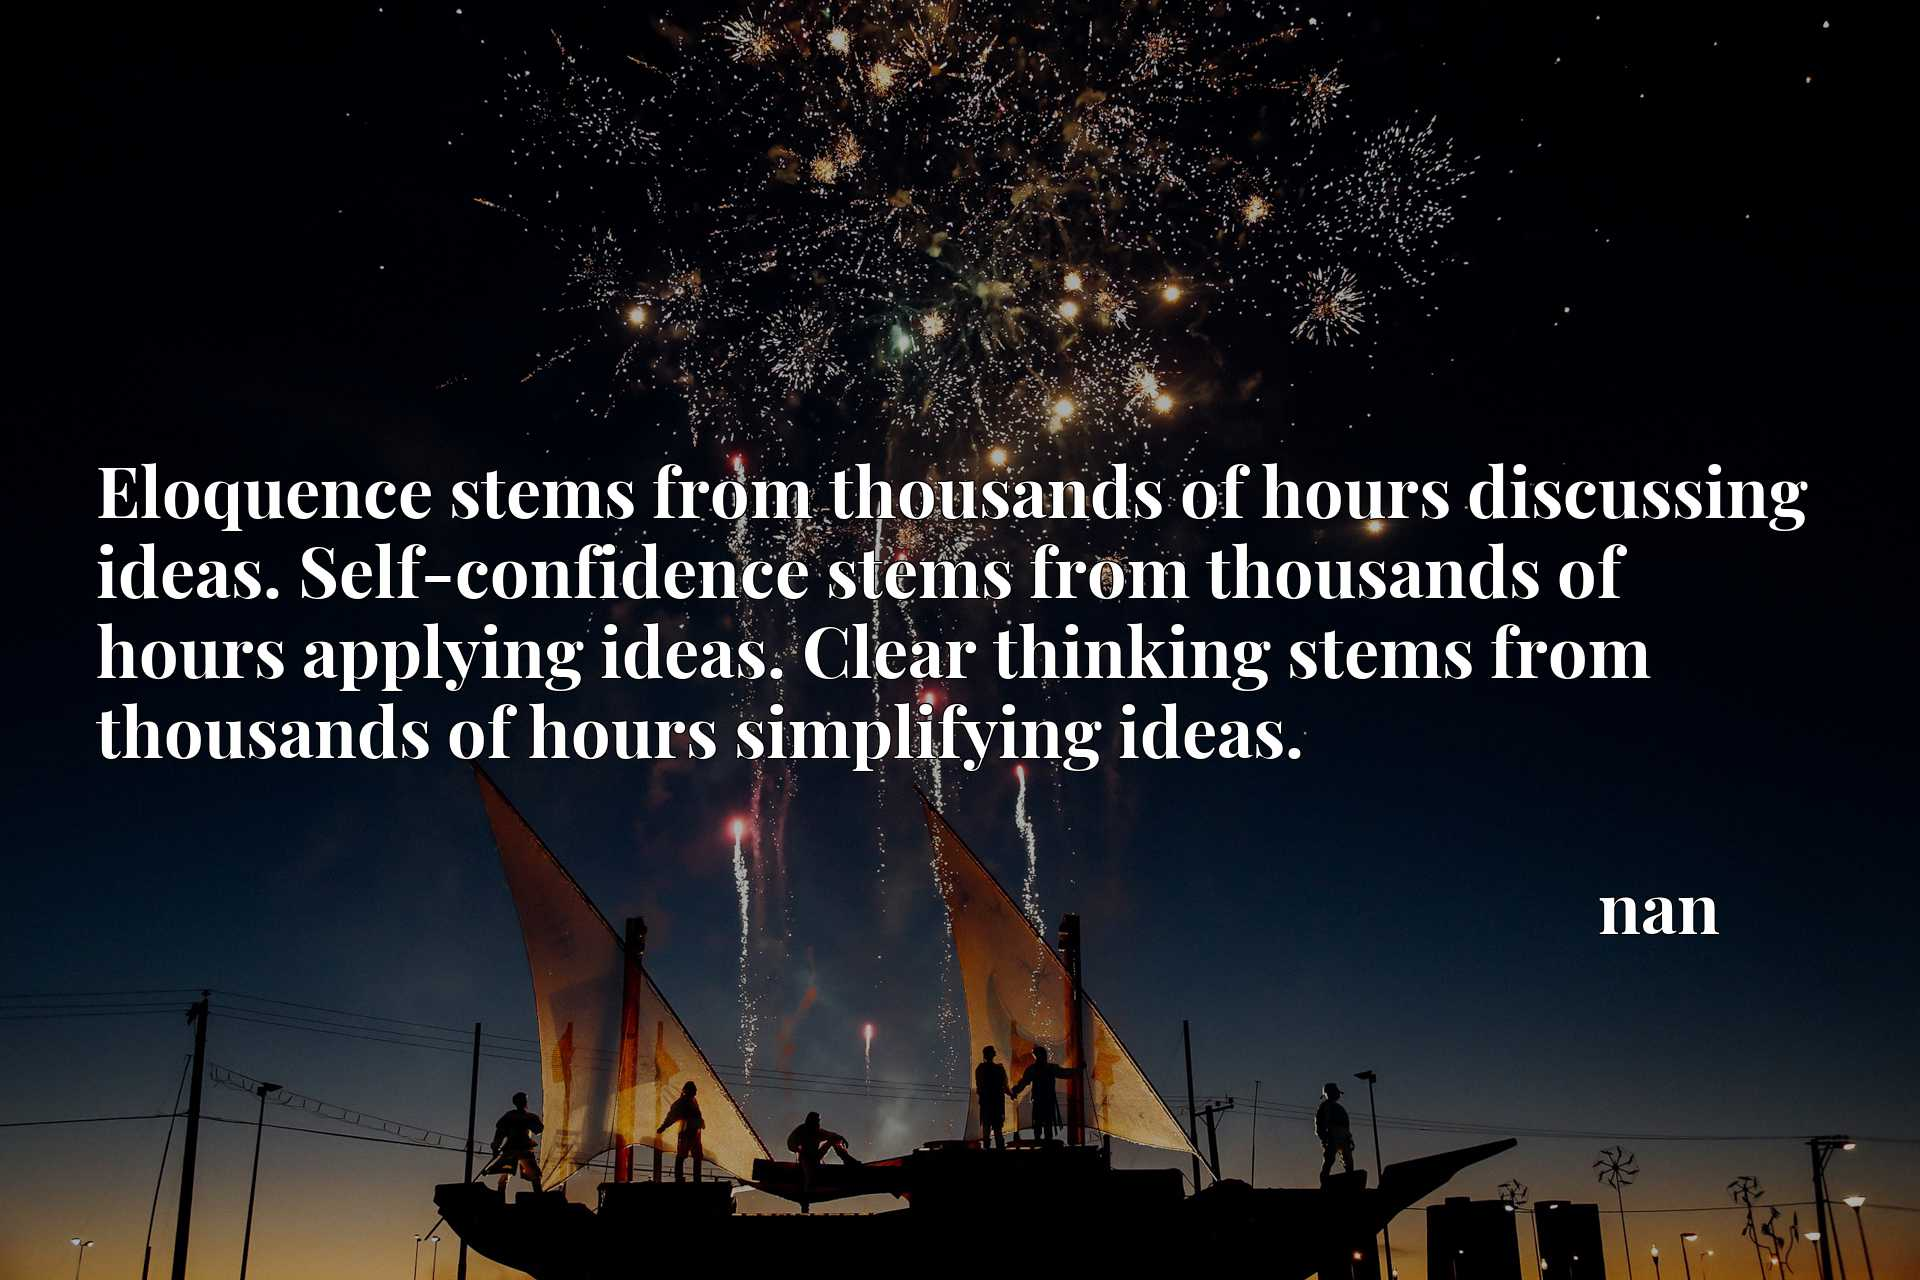 Eloquence stems from thousands of hours discussing ideas. Self-confidence stems from thousands of hours applying ideas. Clear thinking stems from thousands of hours simplifying ideas.